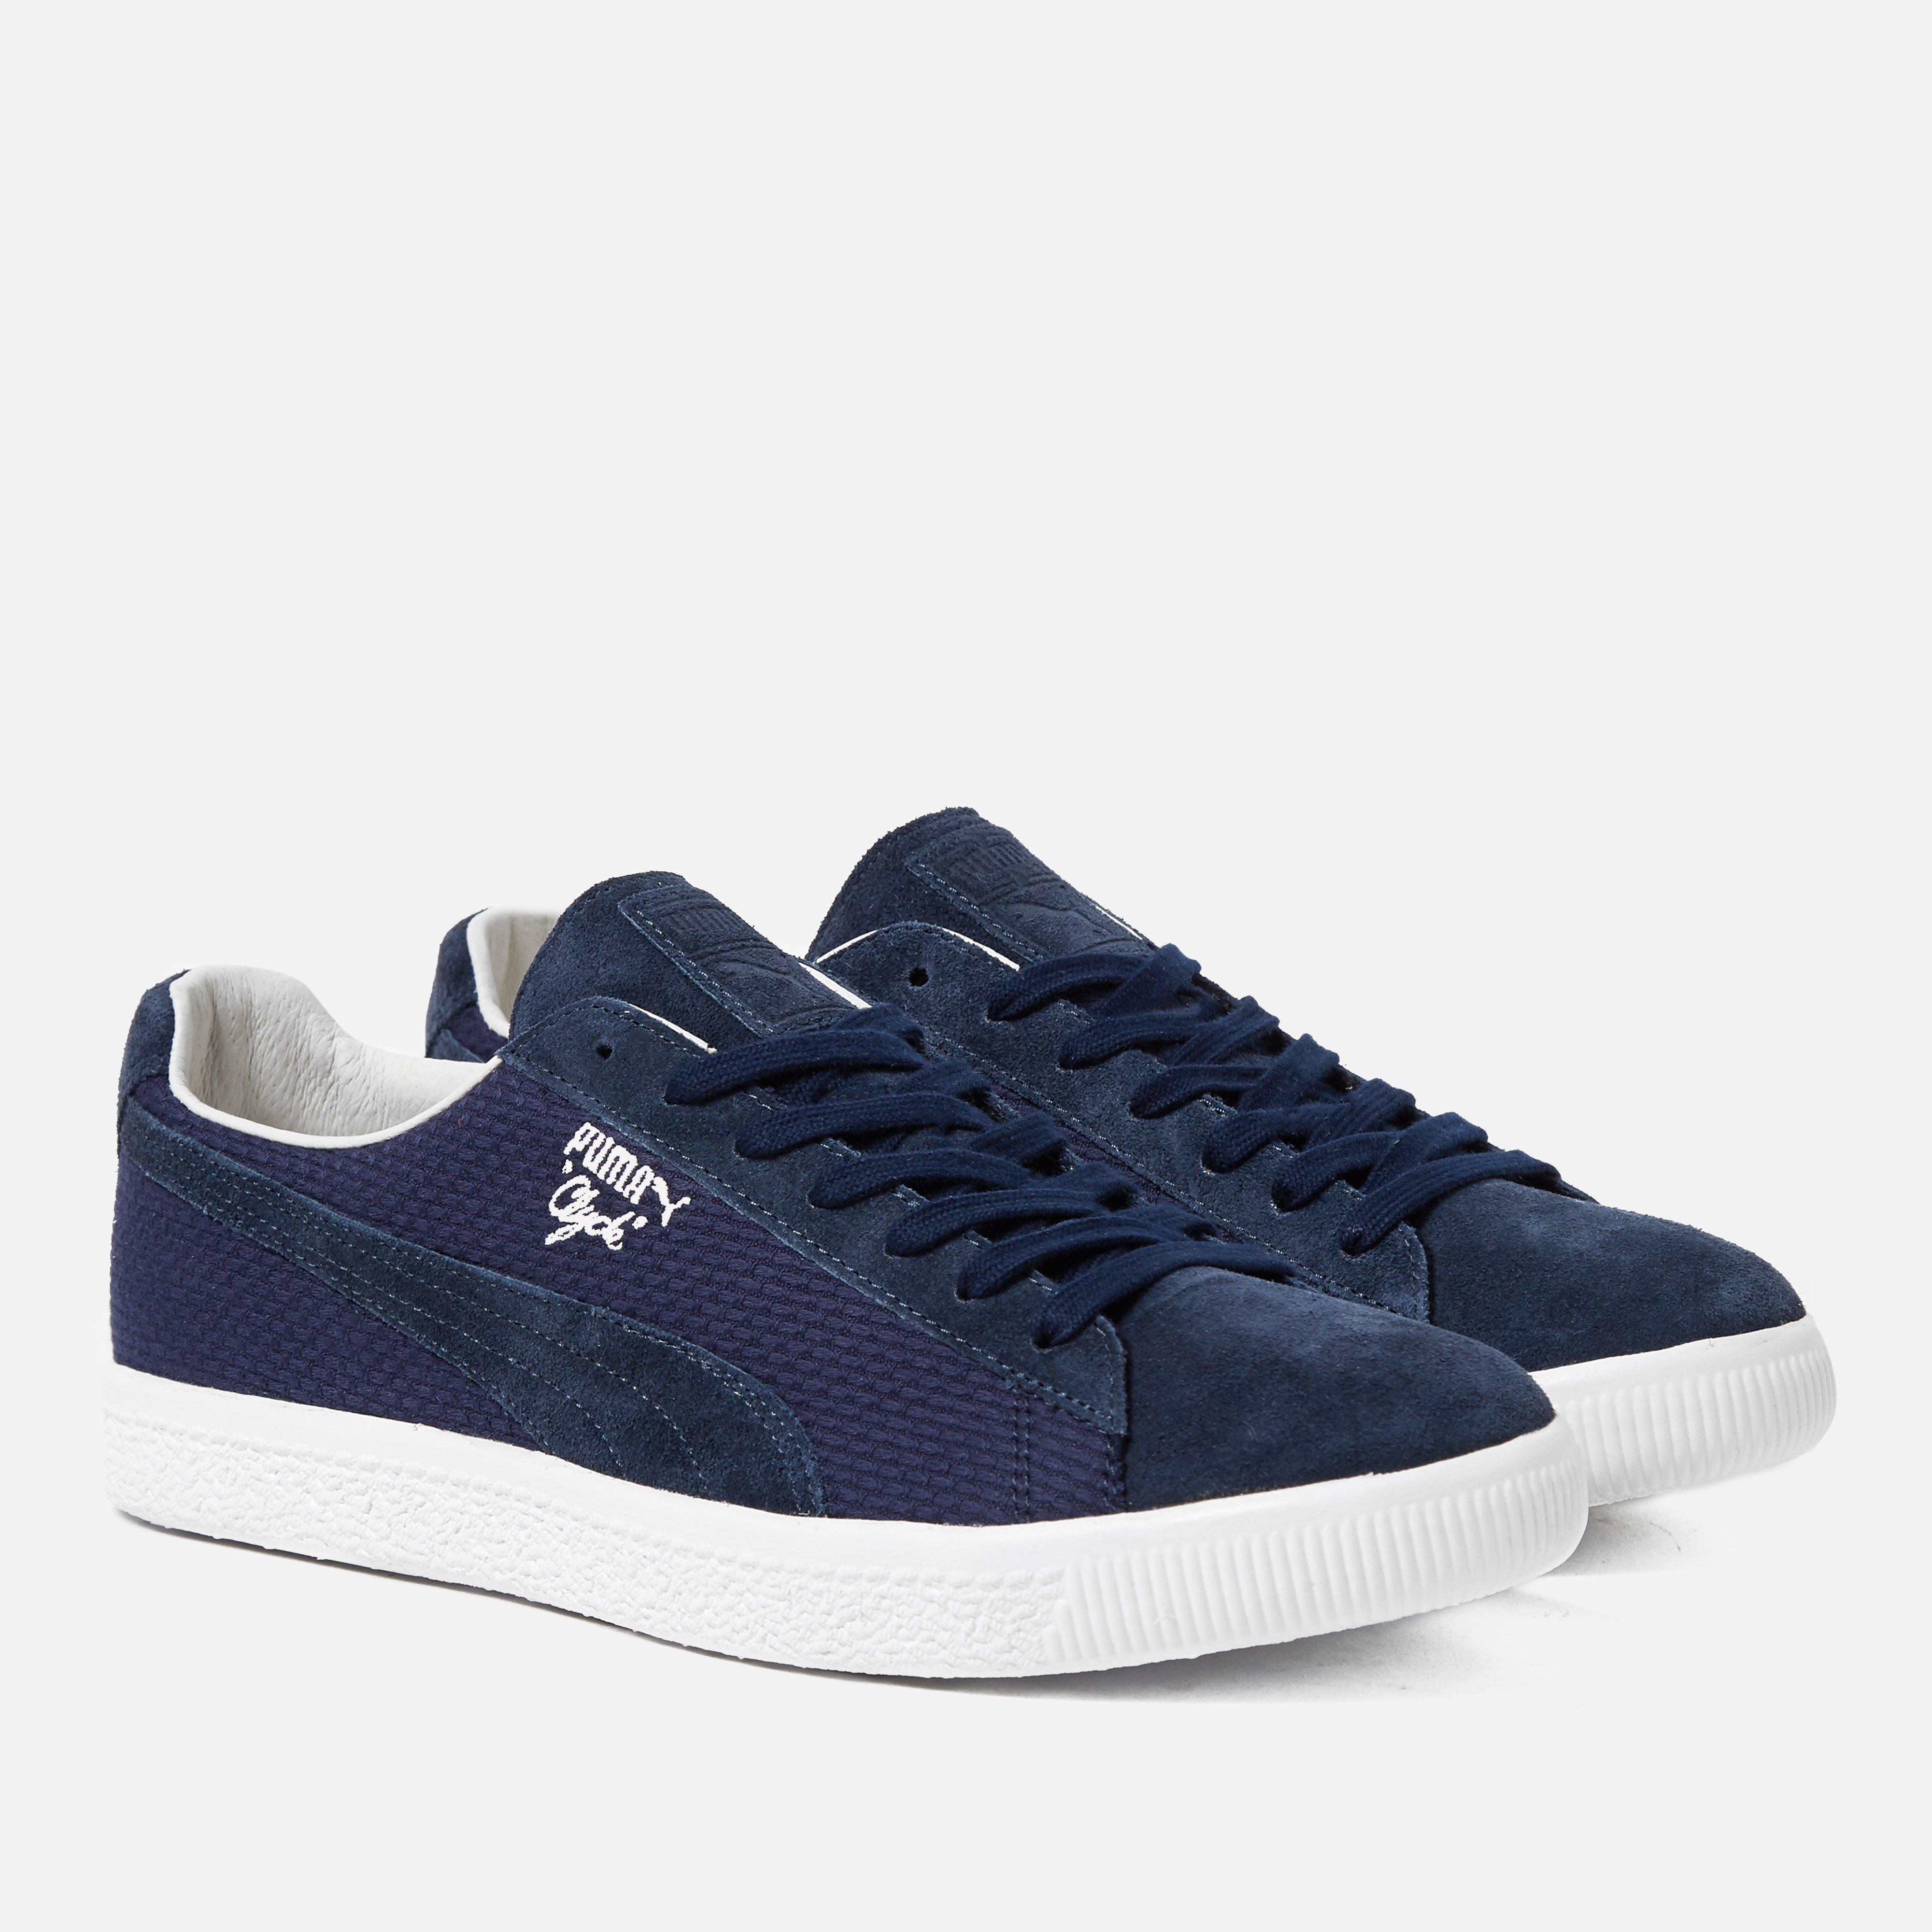 Puma Clyde - Made in Japan Peacoat